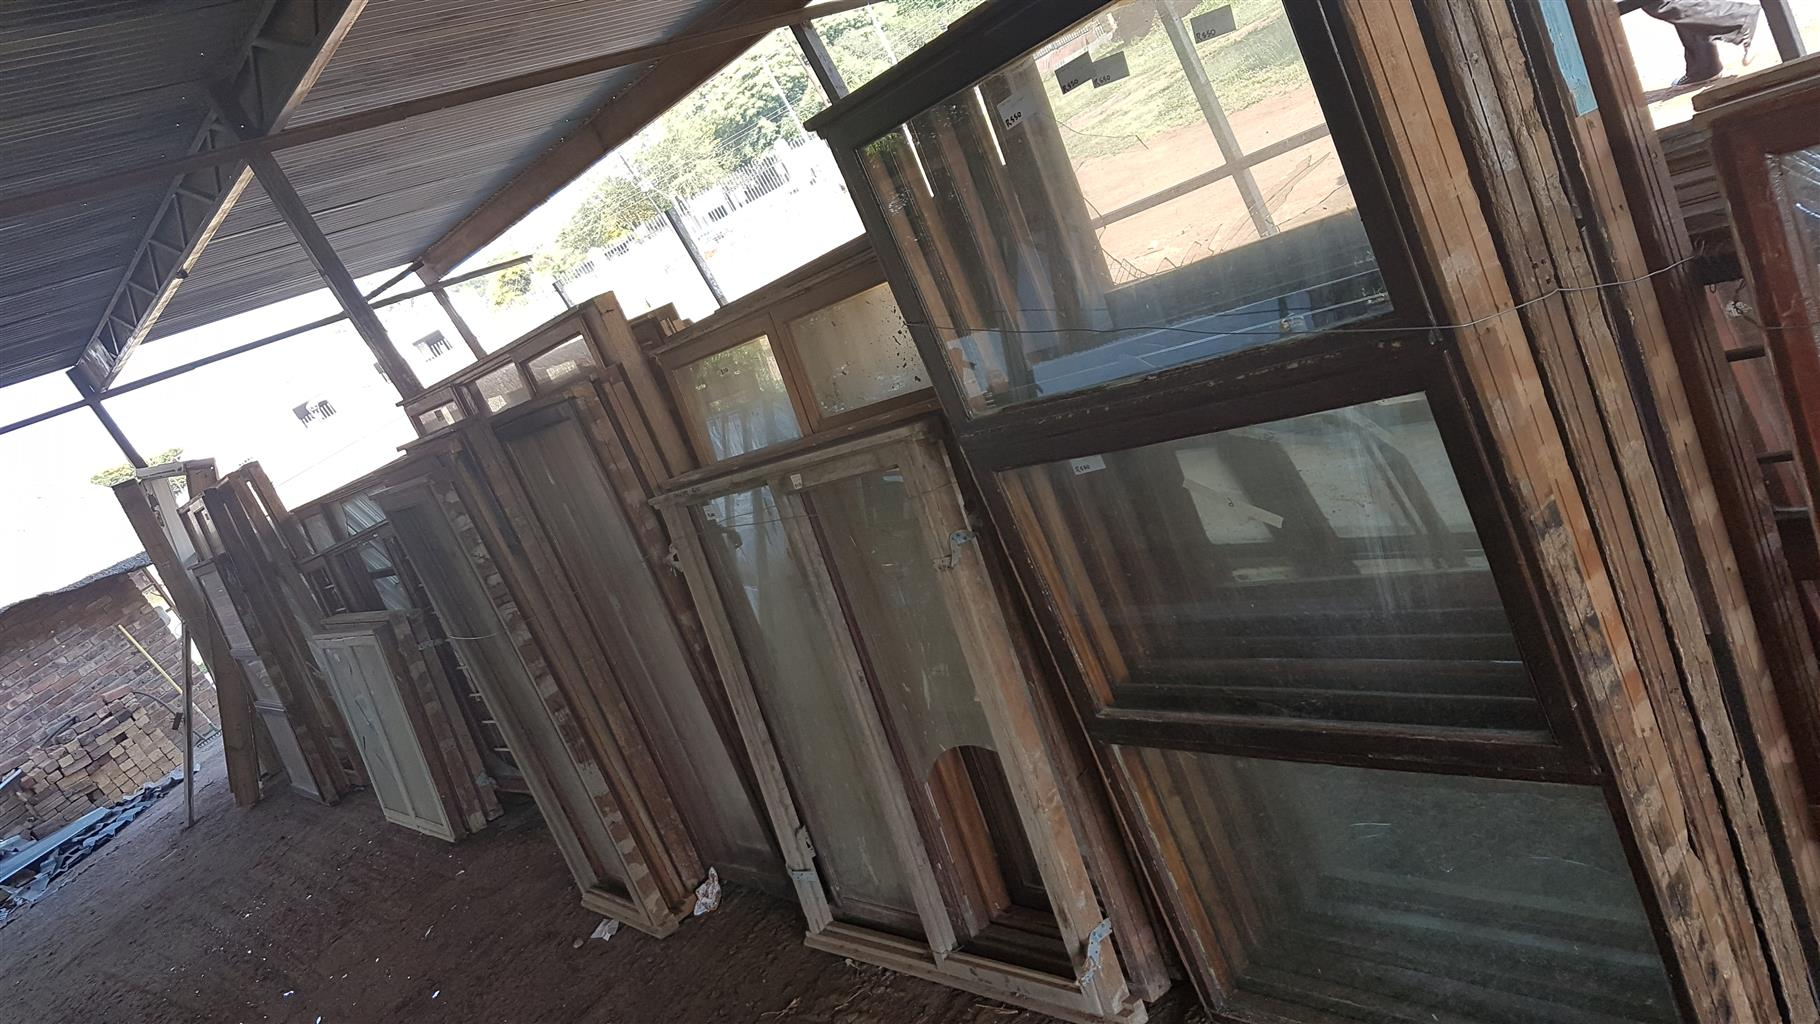 2nd hand window frames for sale - Window Frames For Sale